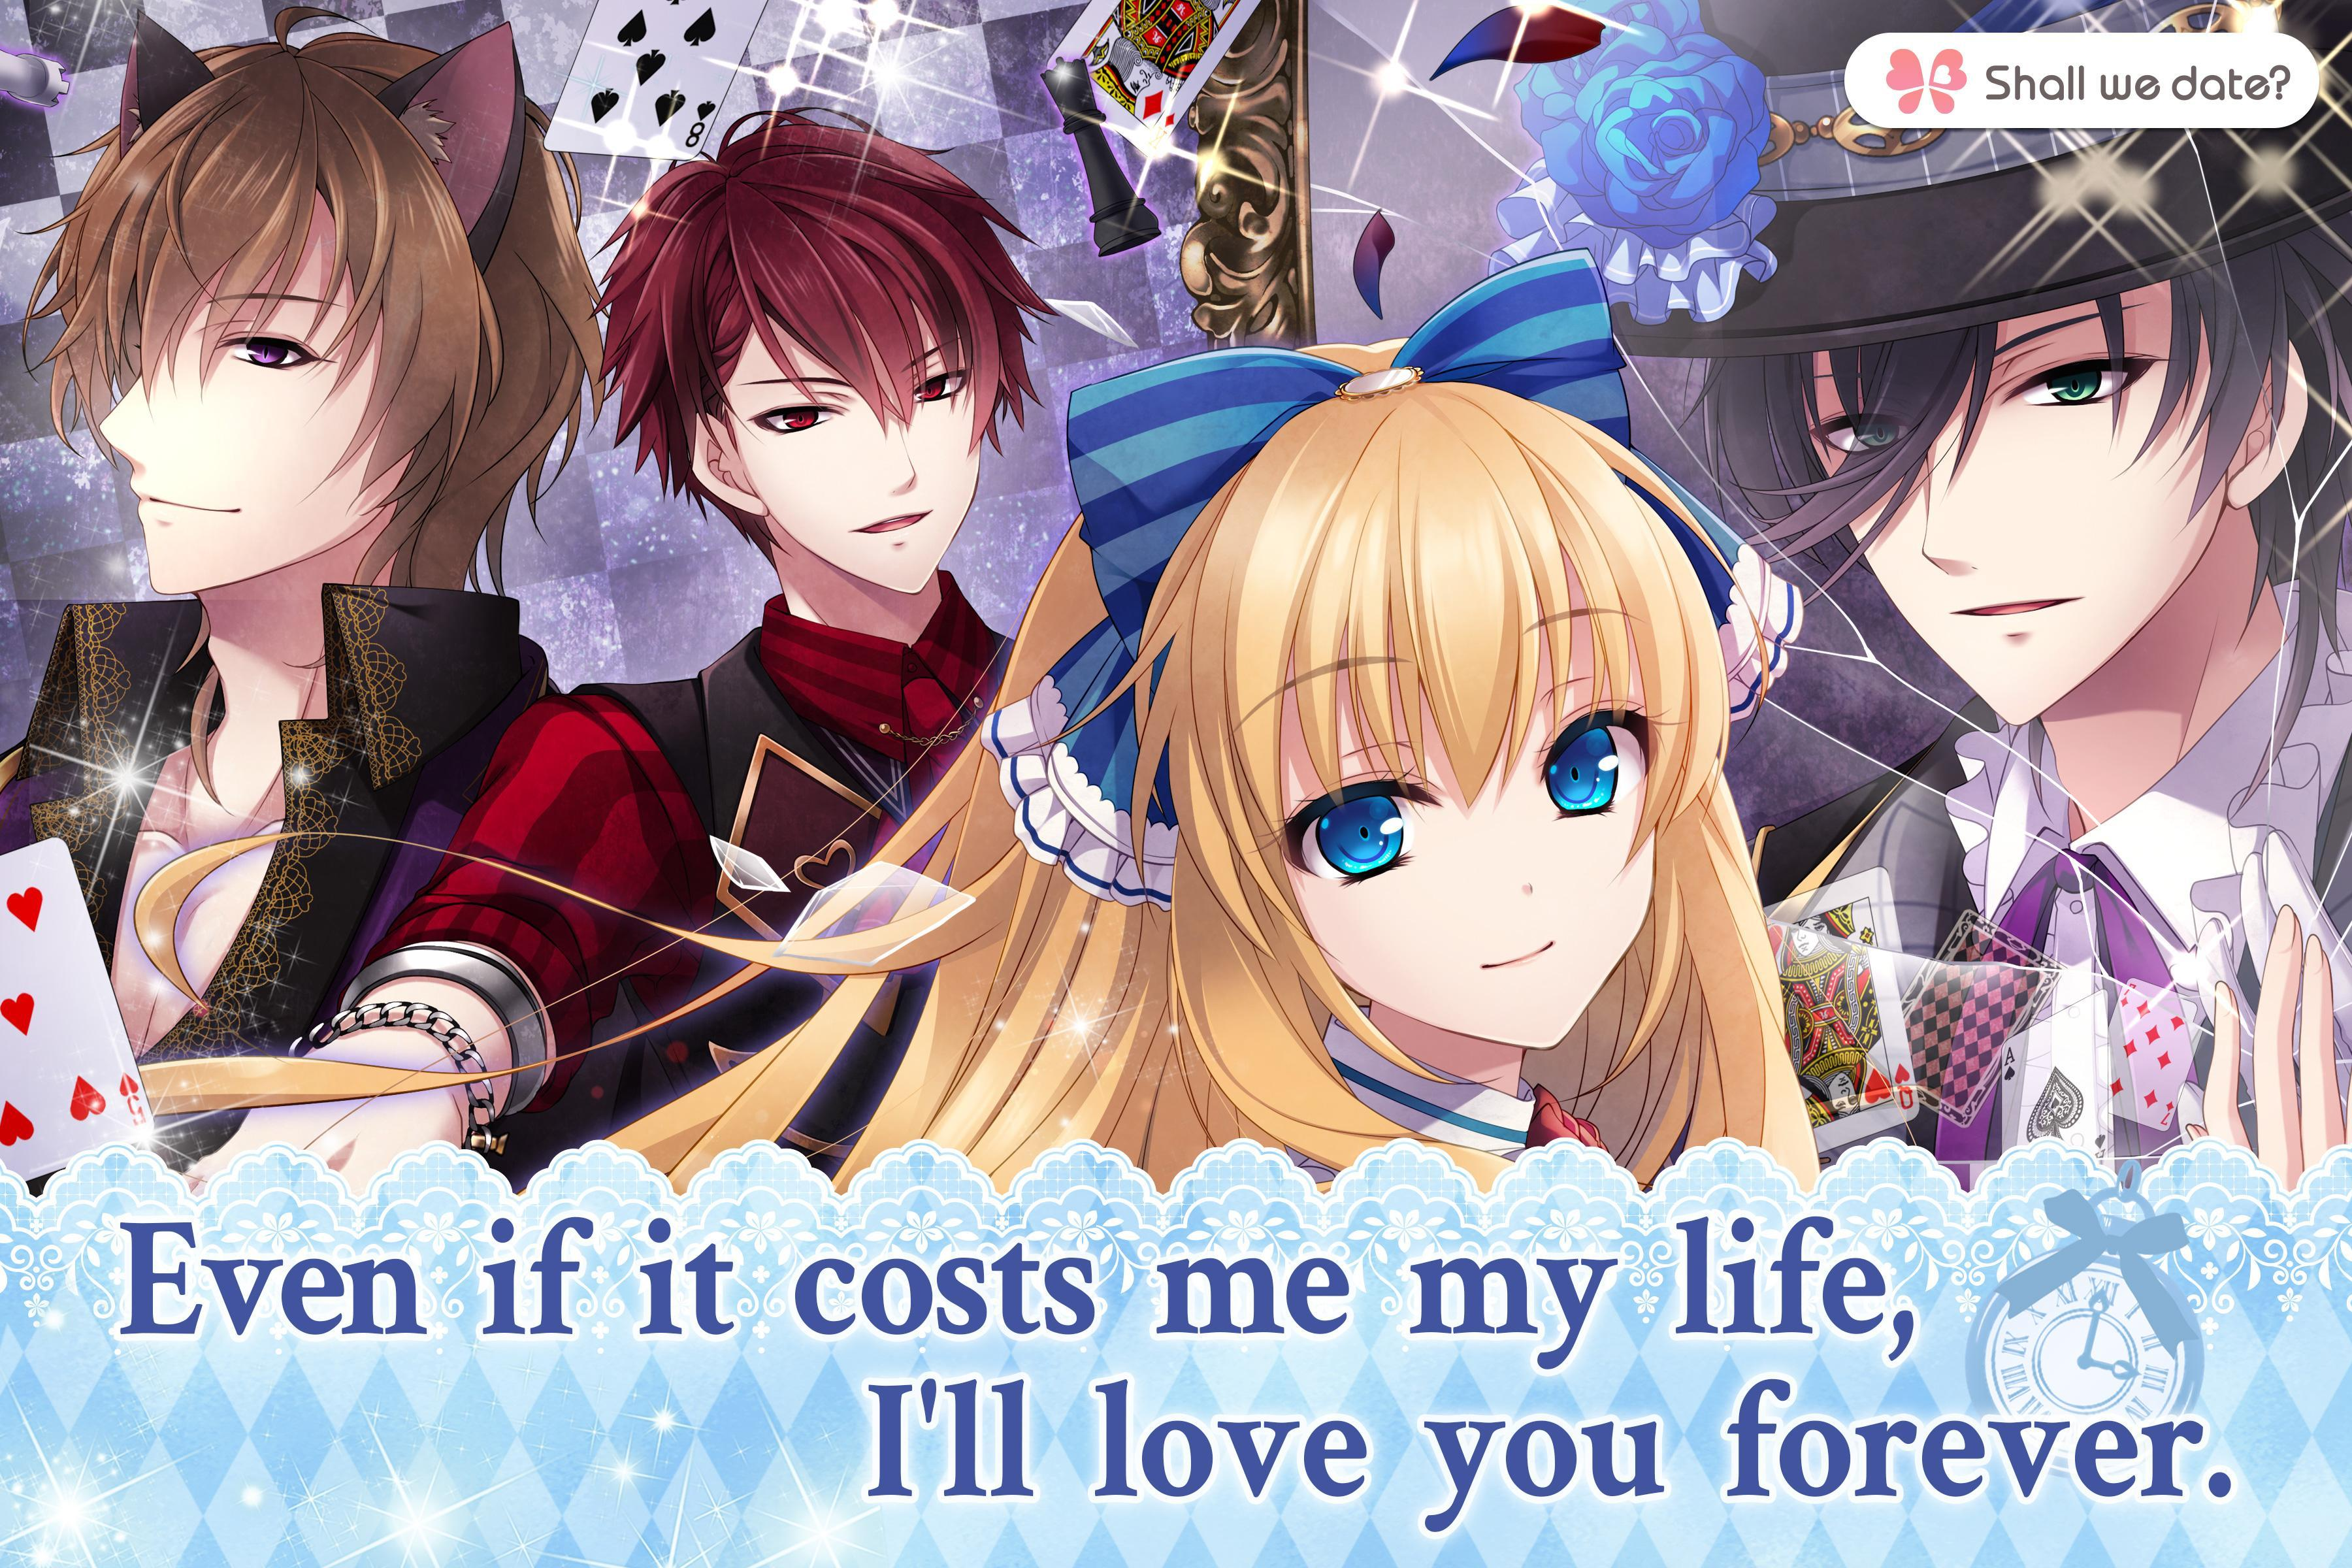 Lost Alice - otome game/dating sim #shall we date 1.5.1 Screenshot 5